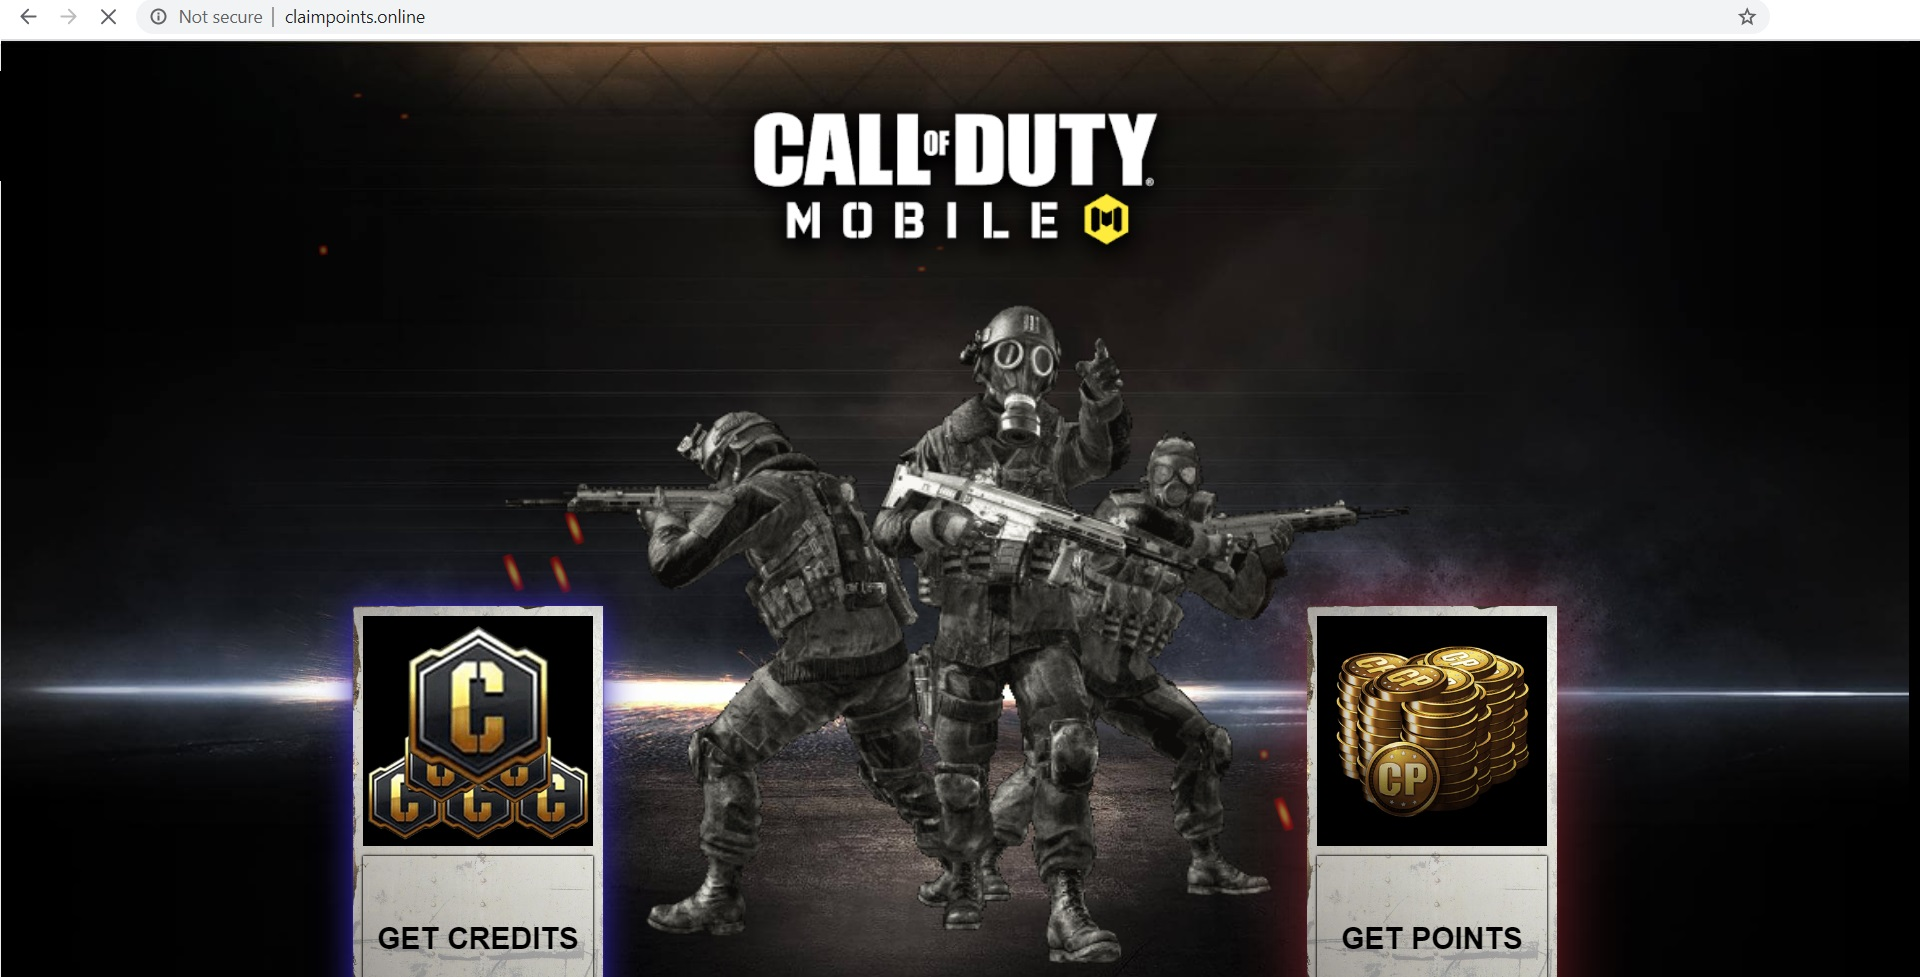 Getcod.net Scam: Call of Duty Mobile Credits